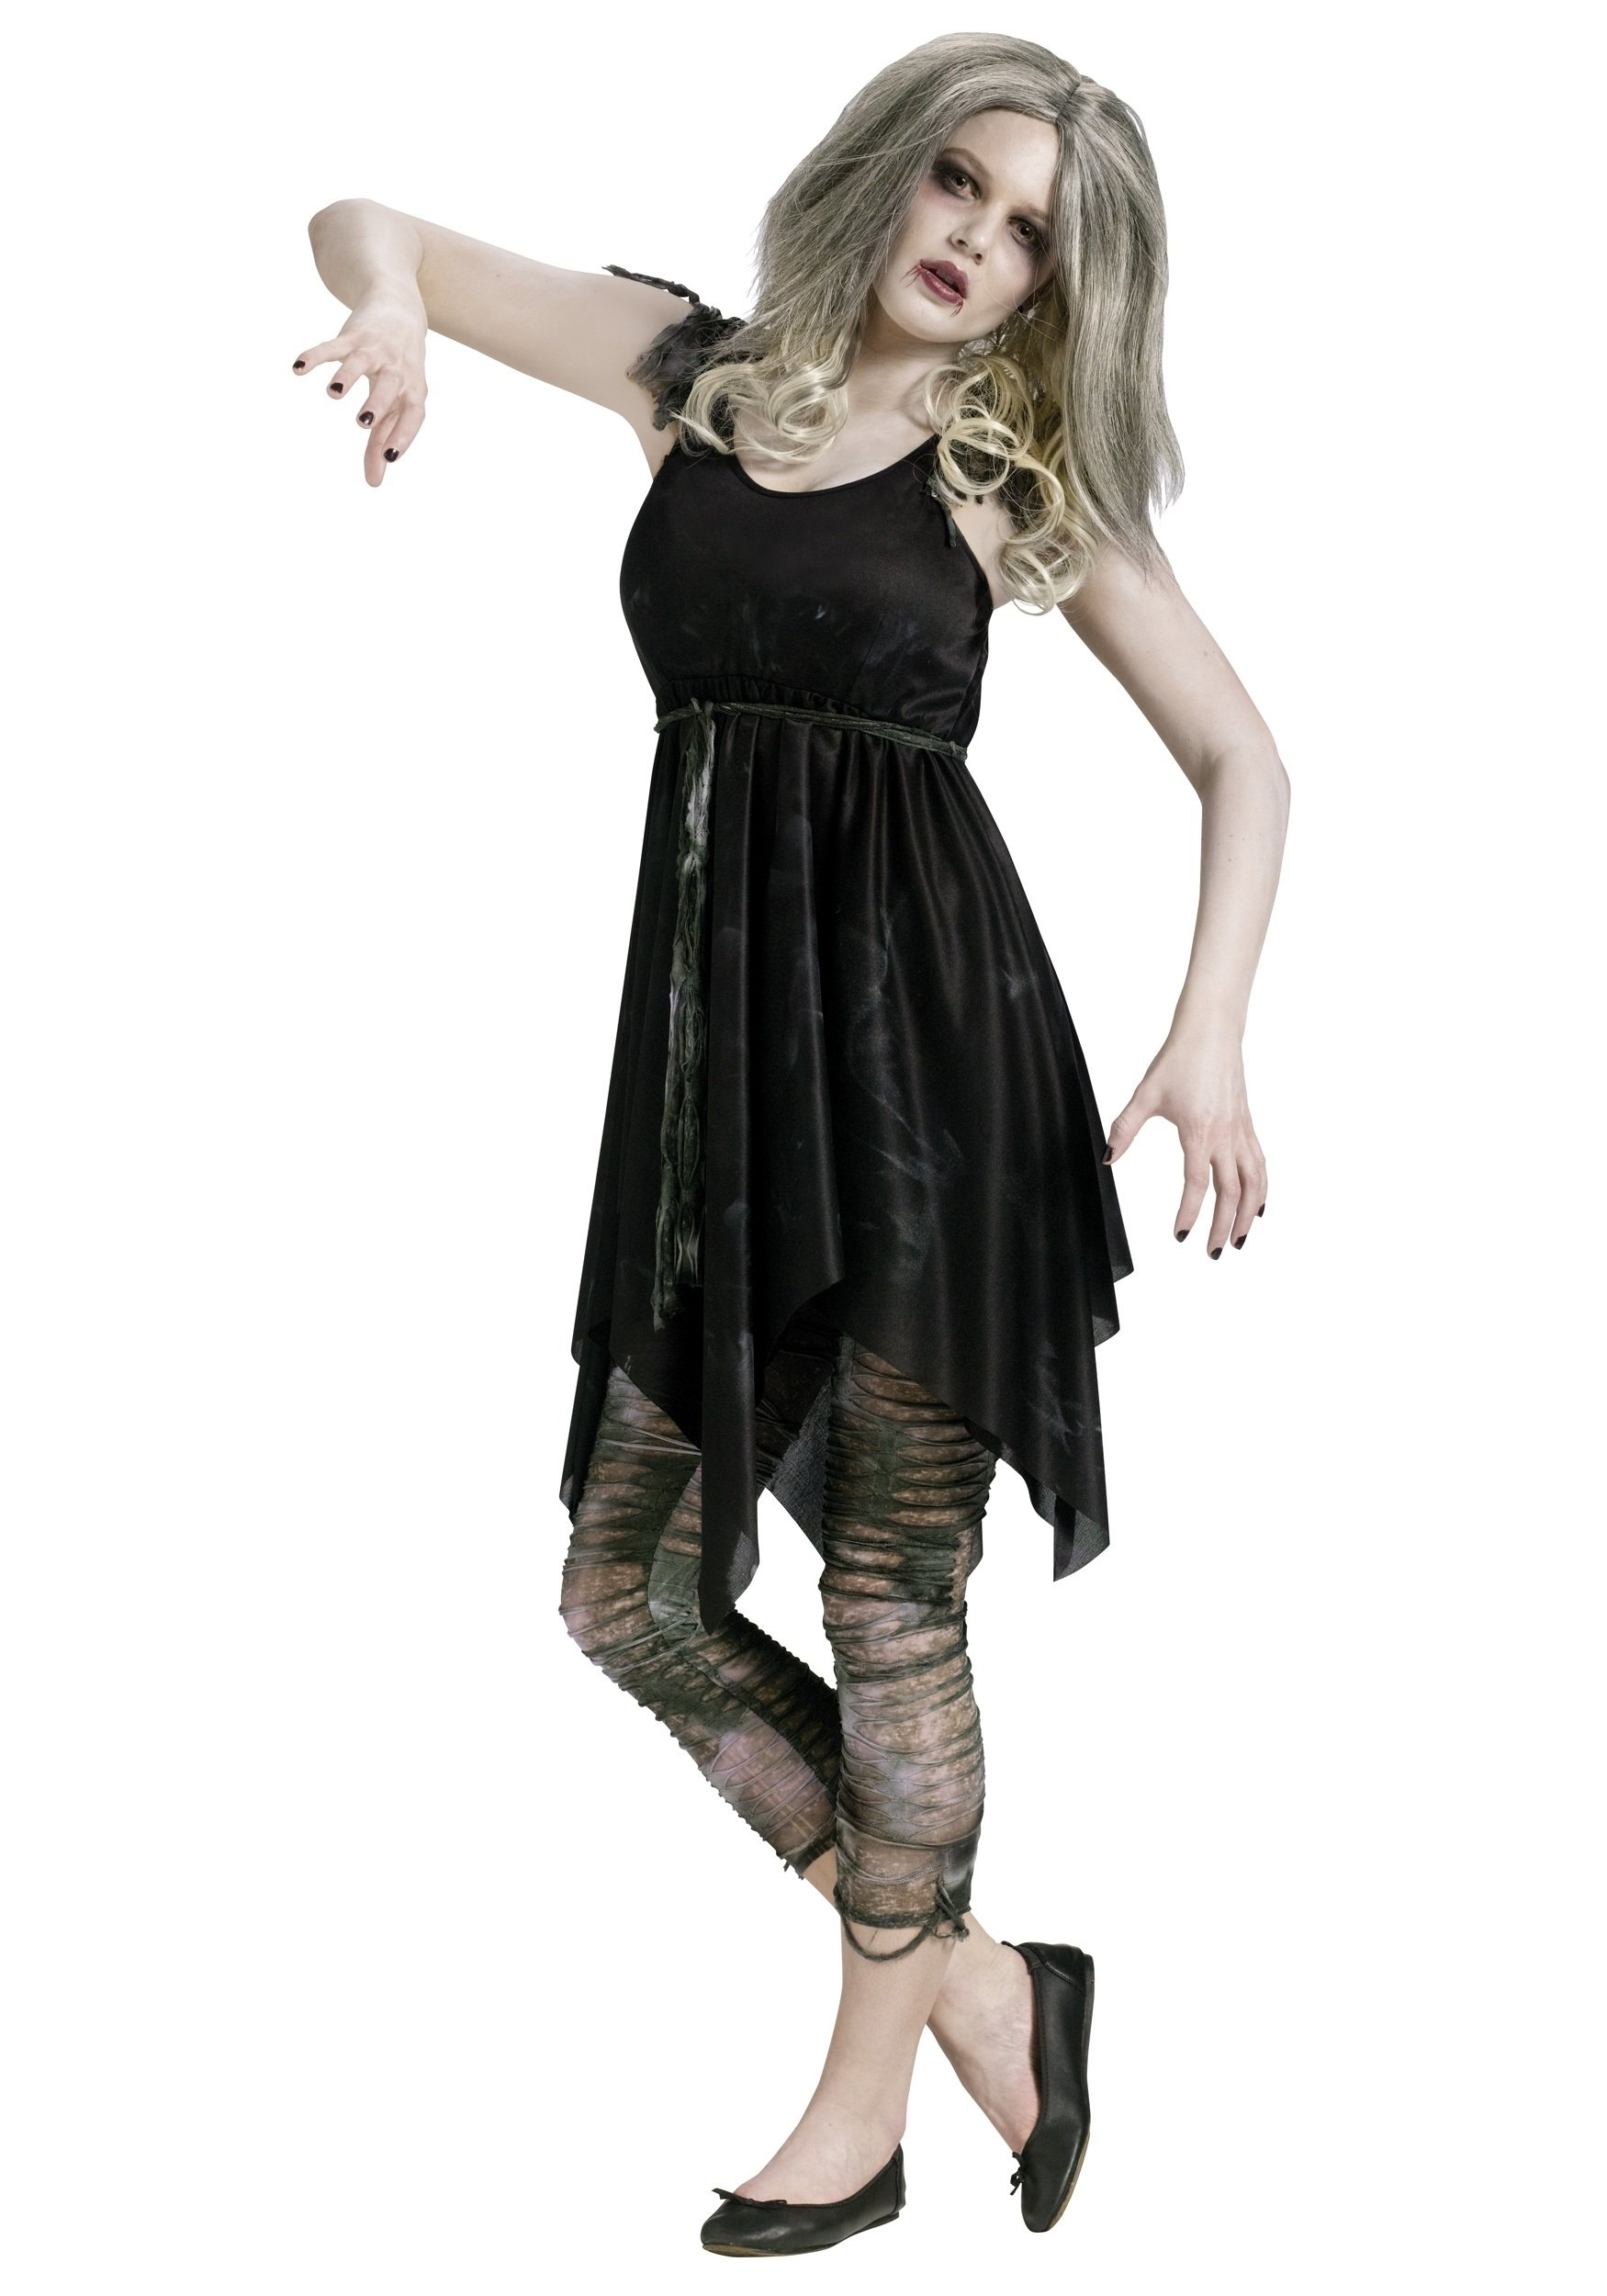 10 Amazing Zombie Costume Ideas For Girls teen night zombie costume halloween costumes 1